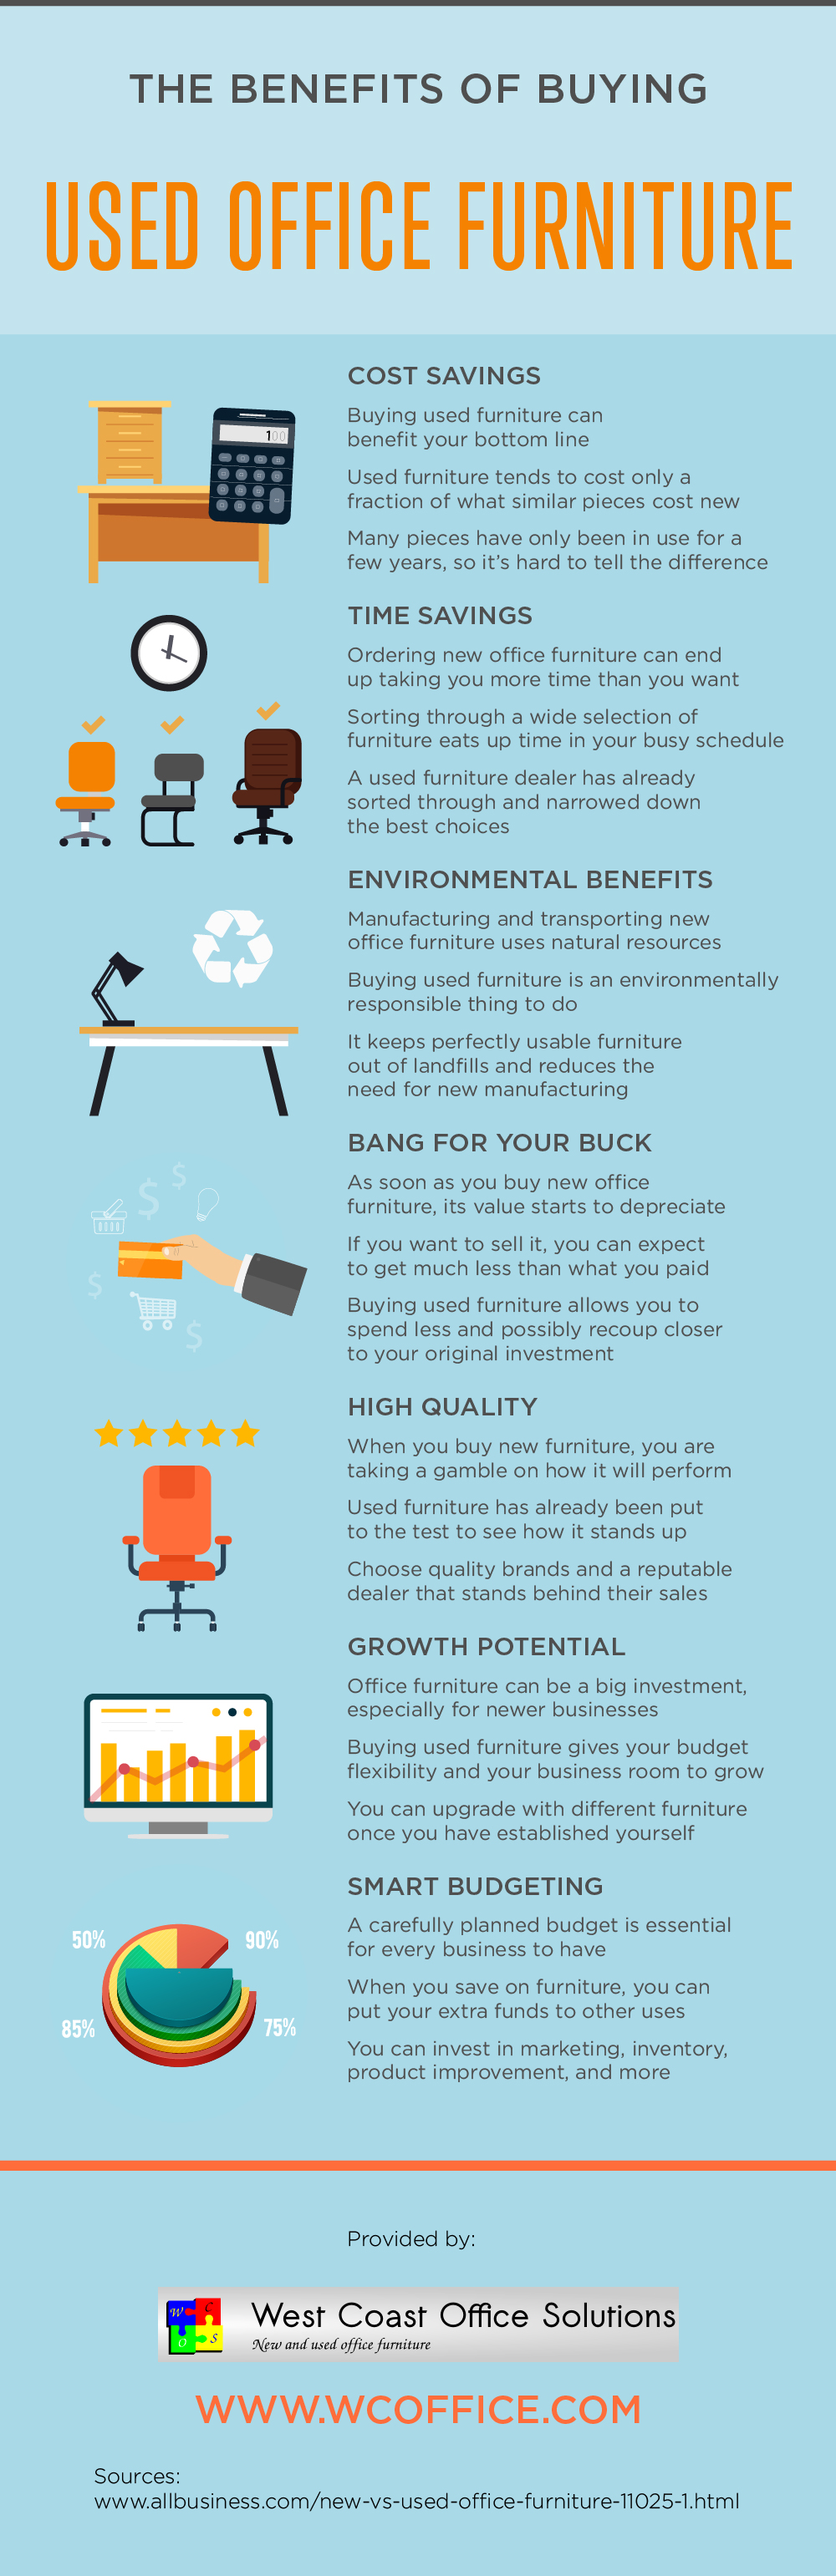 the-benefits-of-buying-used-office-furniture_58209b553797a